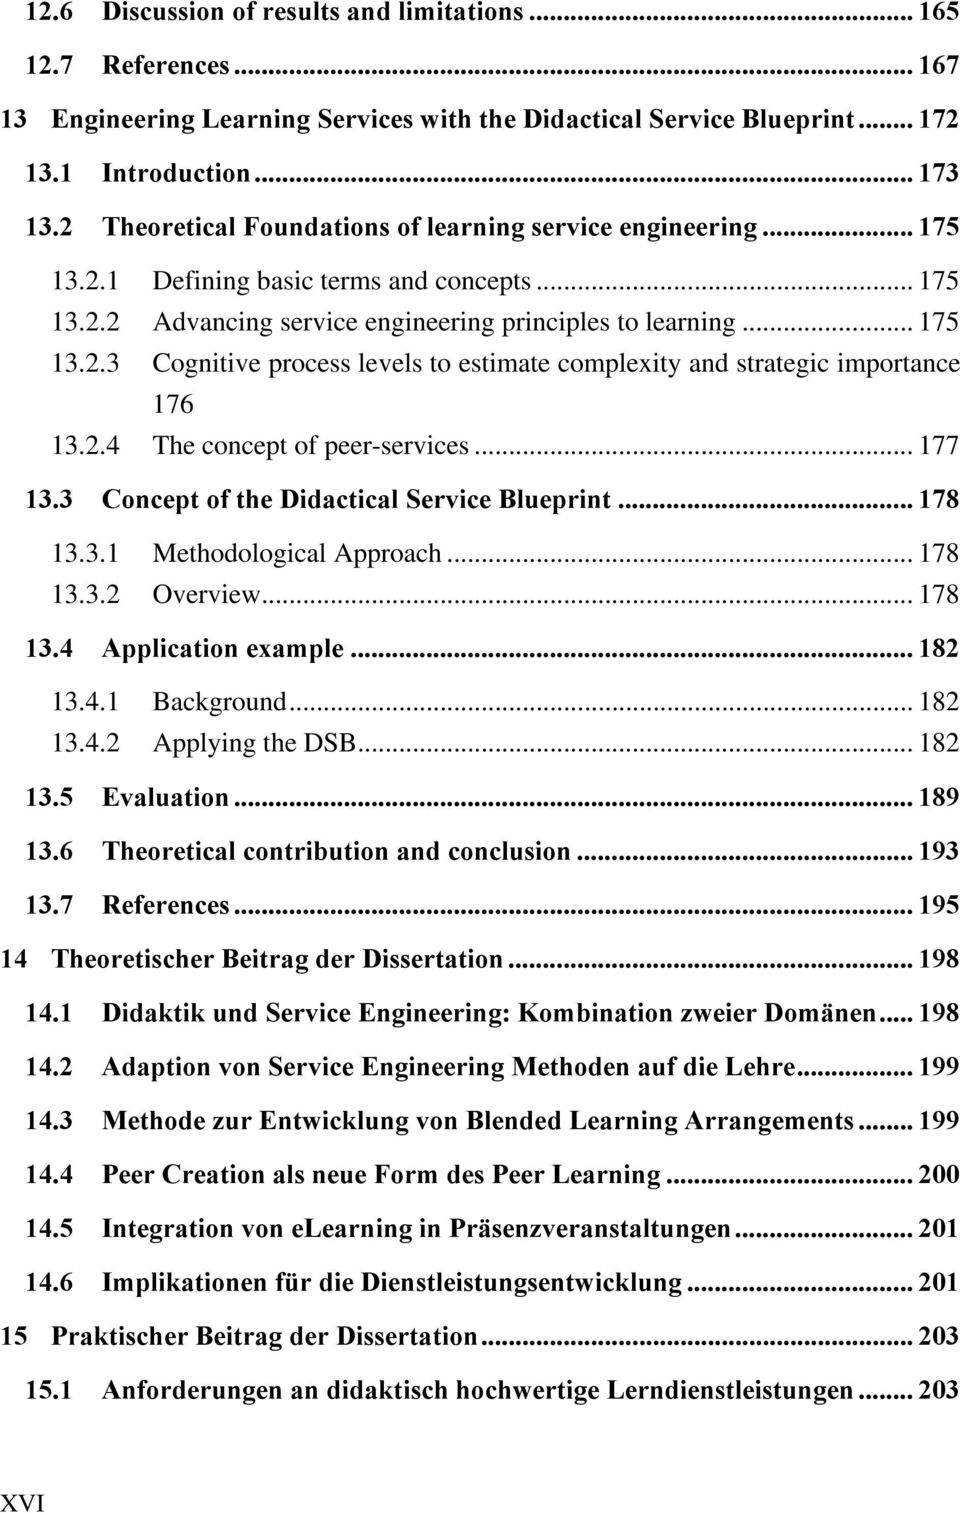 2.4 The concept of peer-services... 177 13.3 Concept of the Didactical Service Blueprint... 178 13.3.1 Methodological Approach... 178 13.3.2 Overview... 178 13.4 Application example... 182 13.4.1 Background.